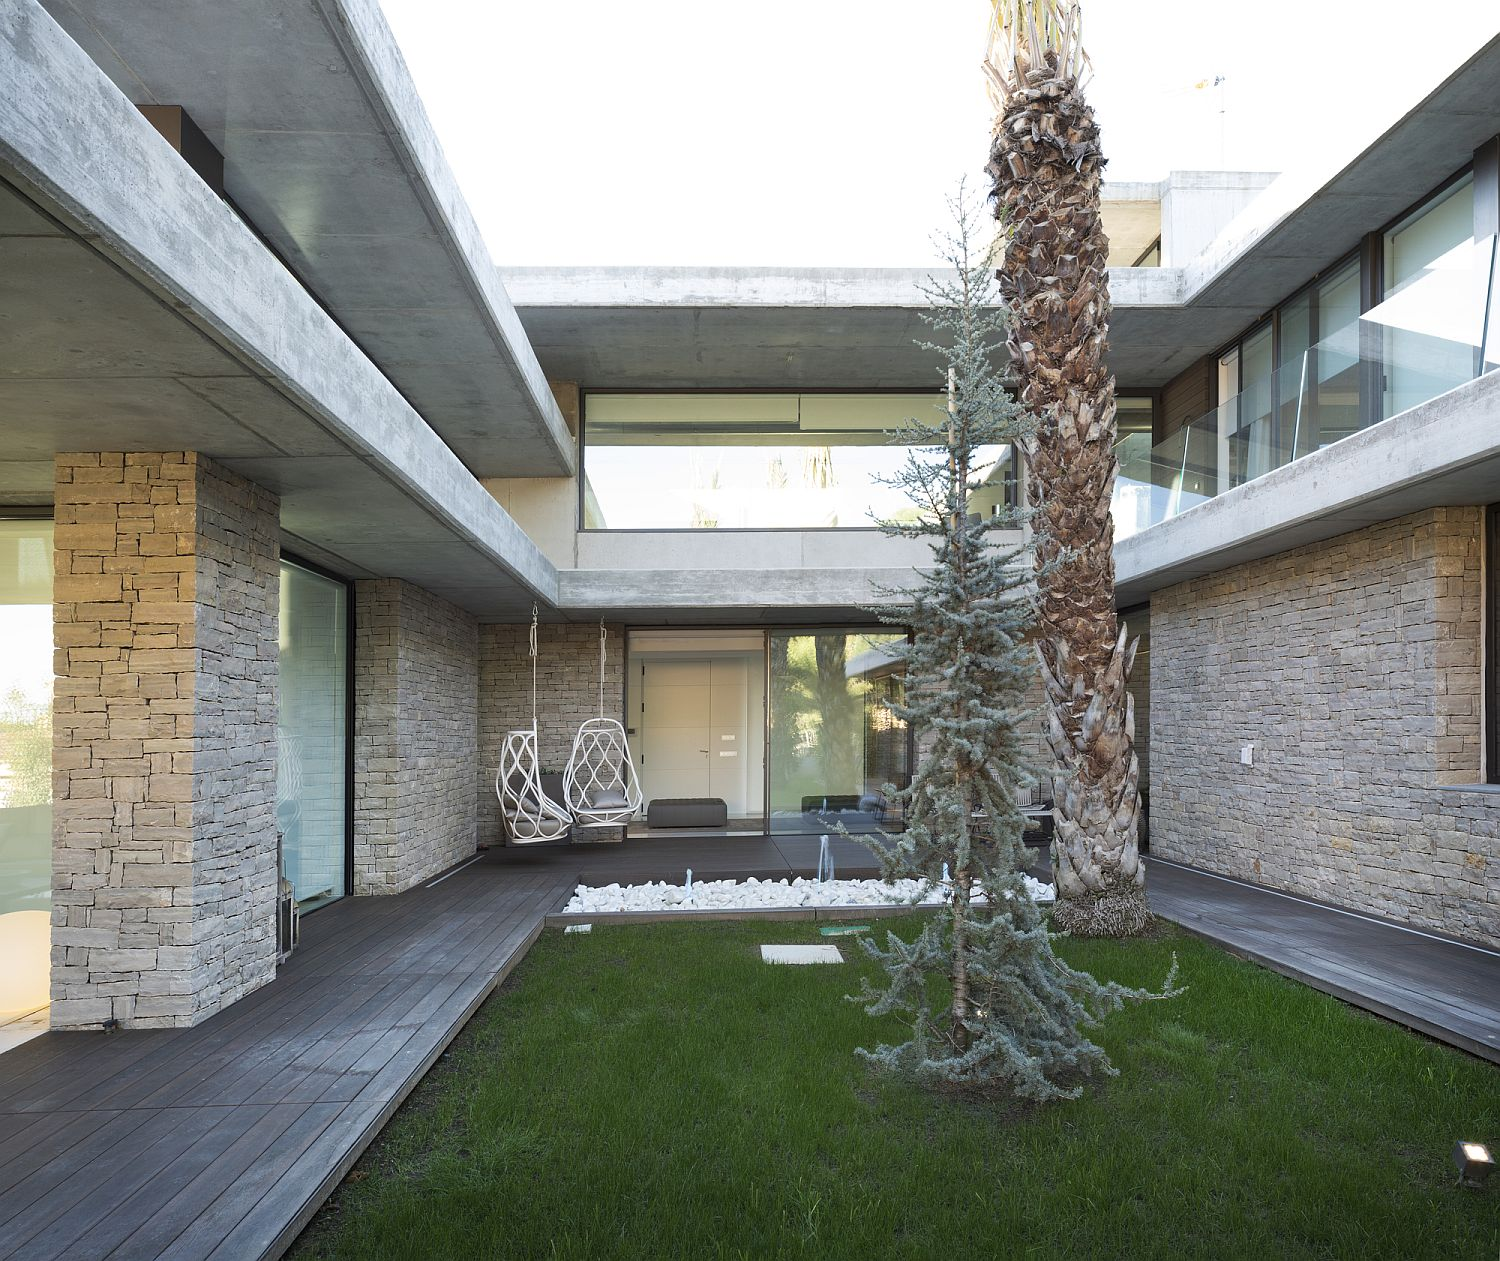 Central courtyard of modern house with a relaxing ambiance